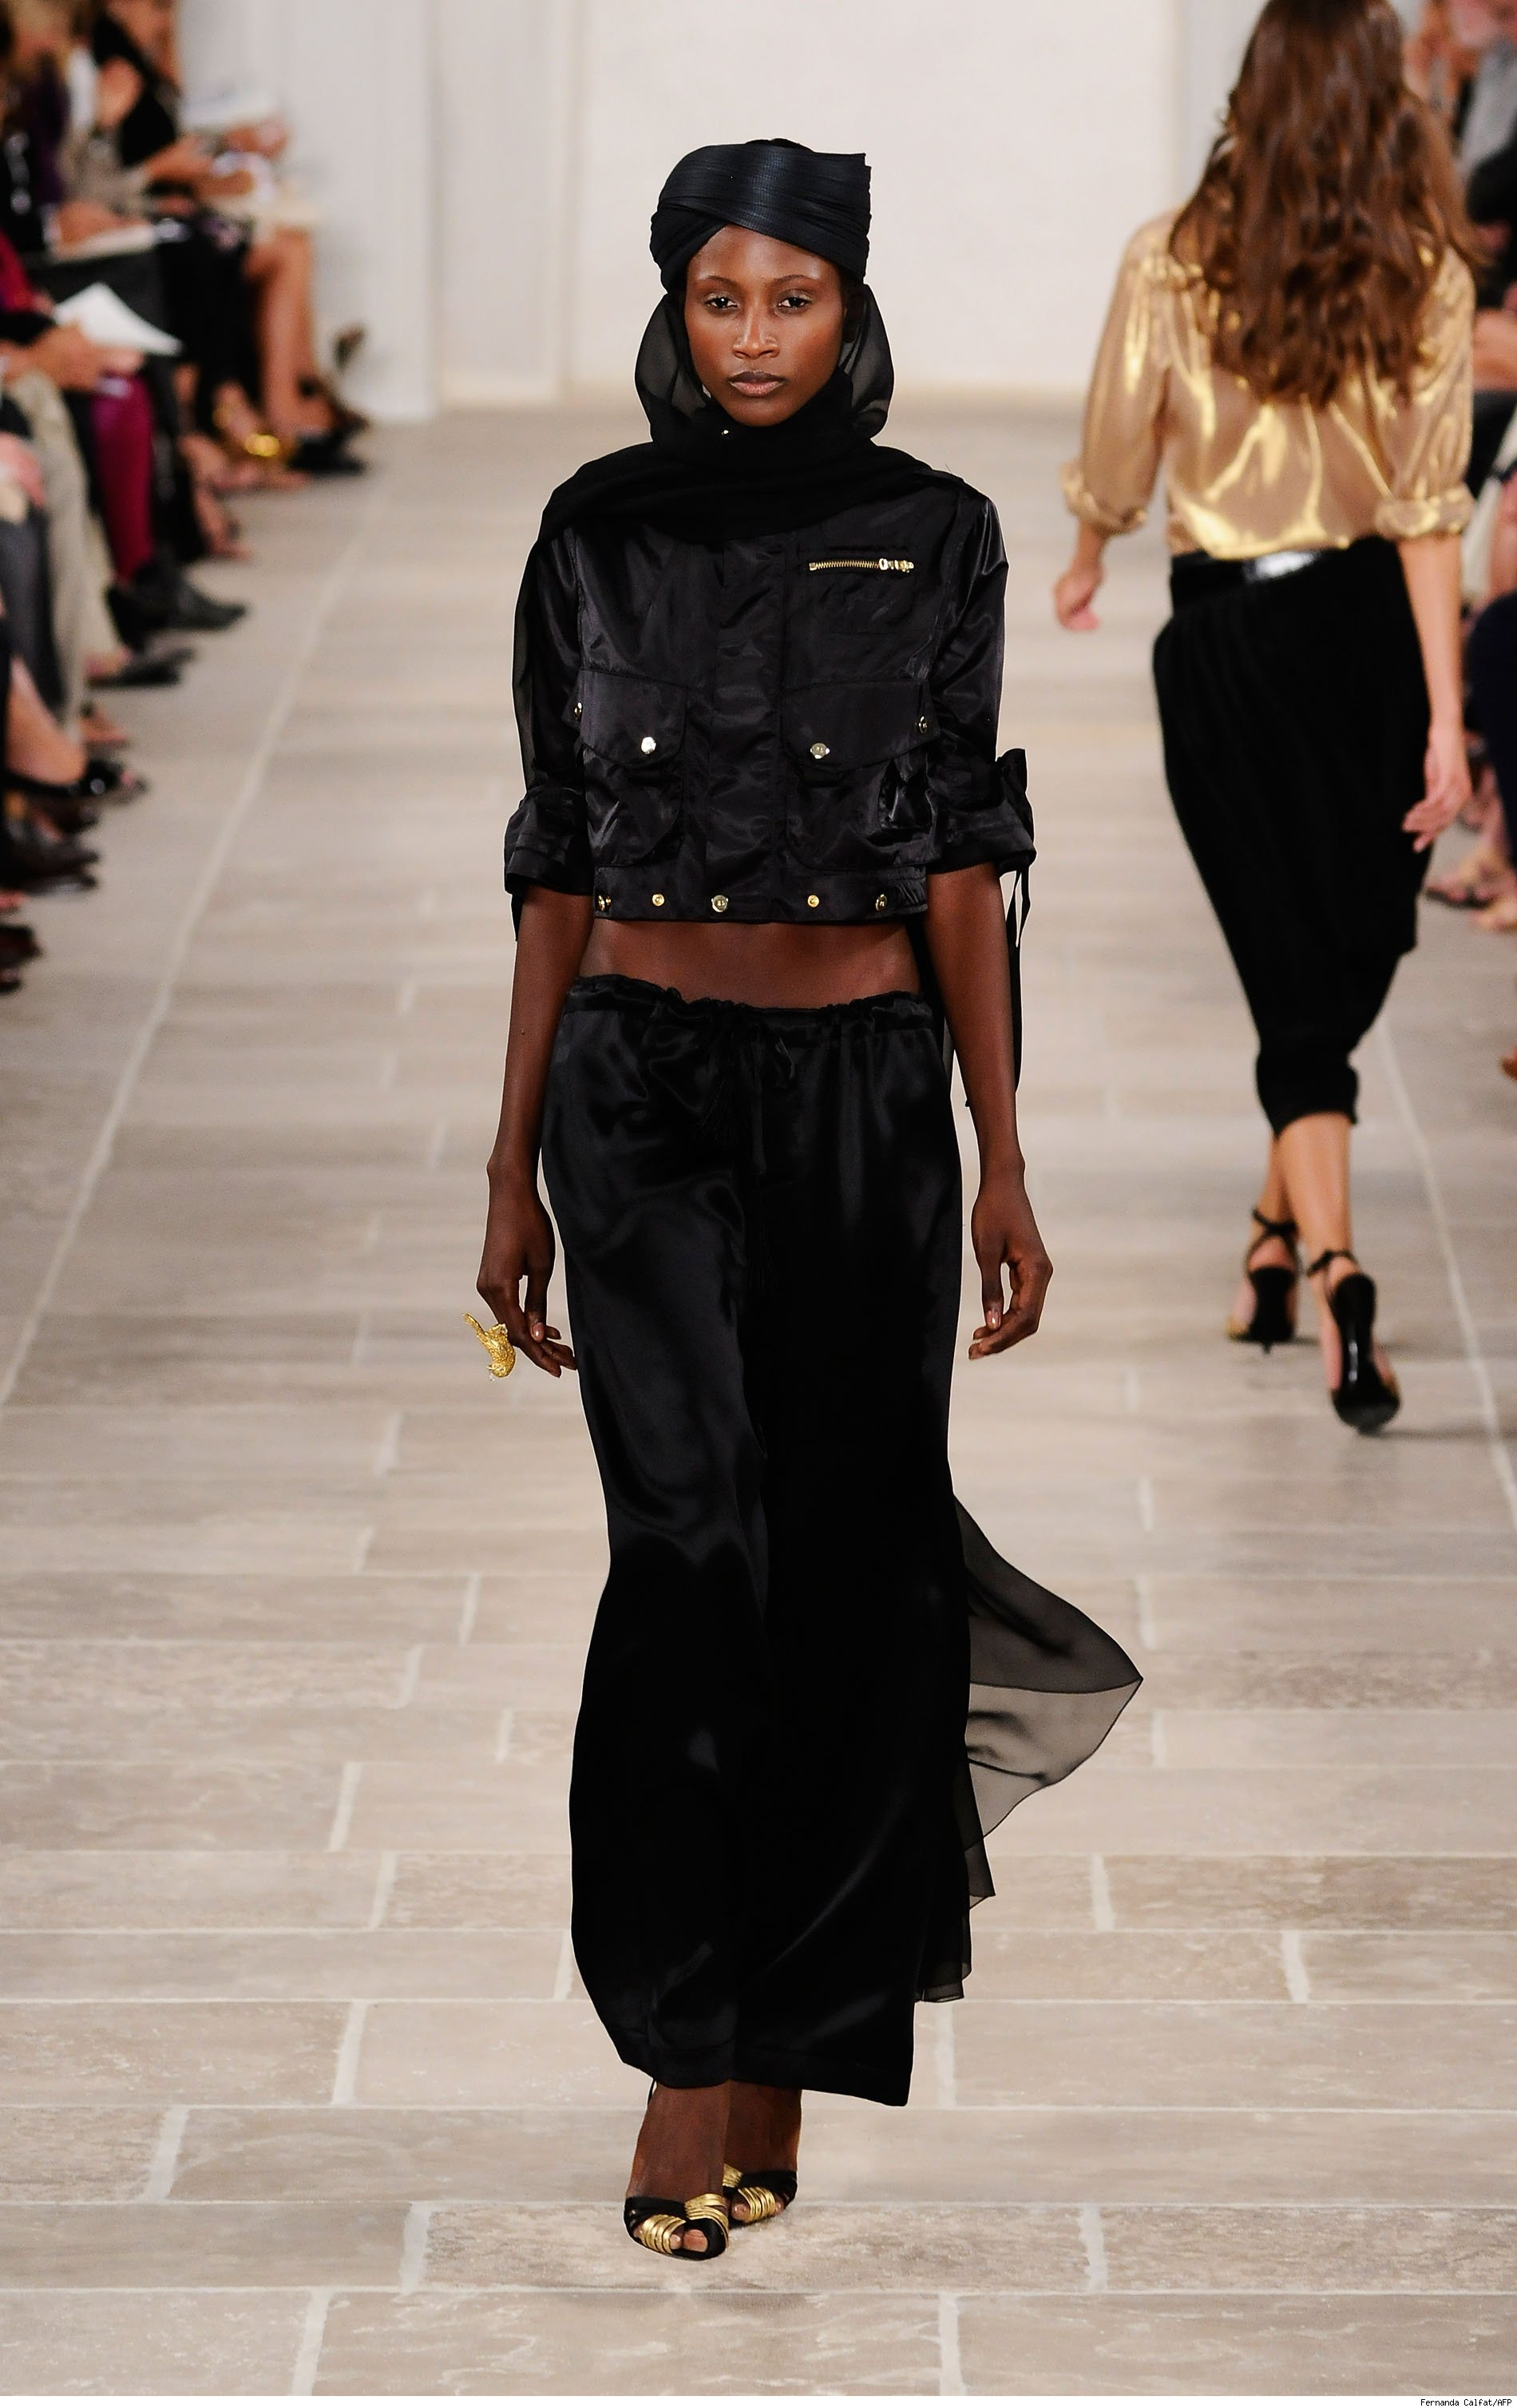 Ralph Lauren Runway Show (2 of